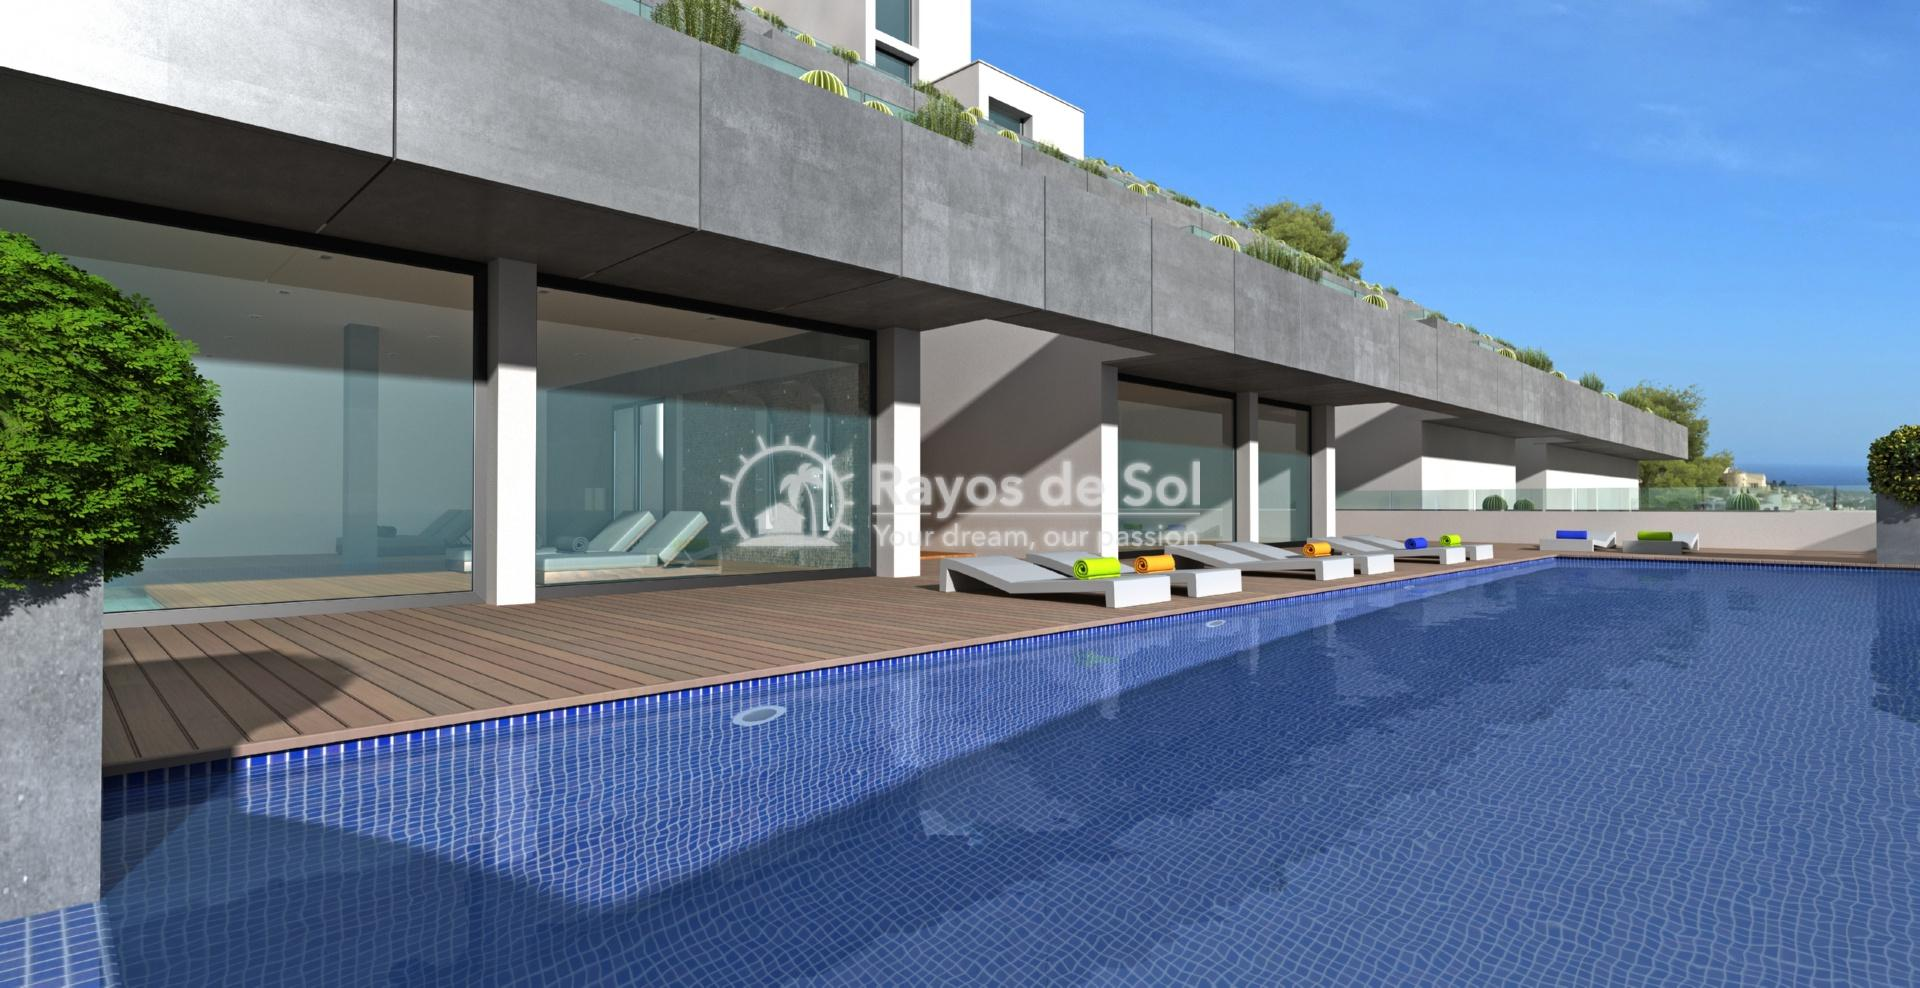 Exclusive apartement in Cumbre del Sol, Benitachell, Costa Blanca (BEVABI3-2) - 17